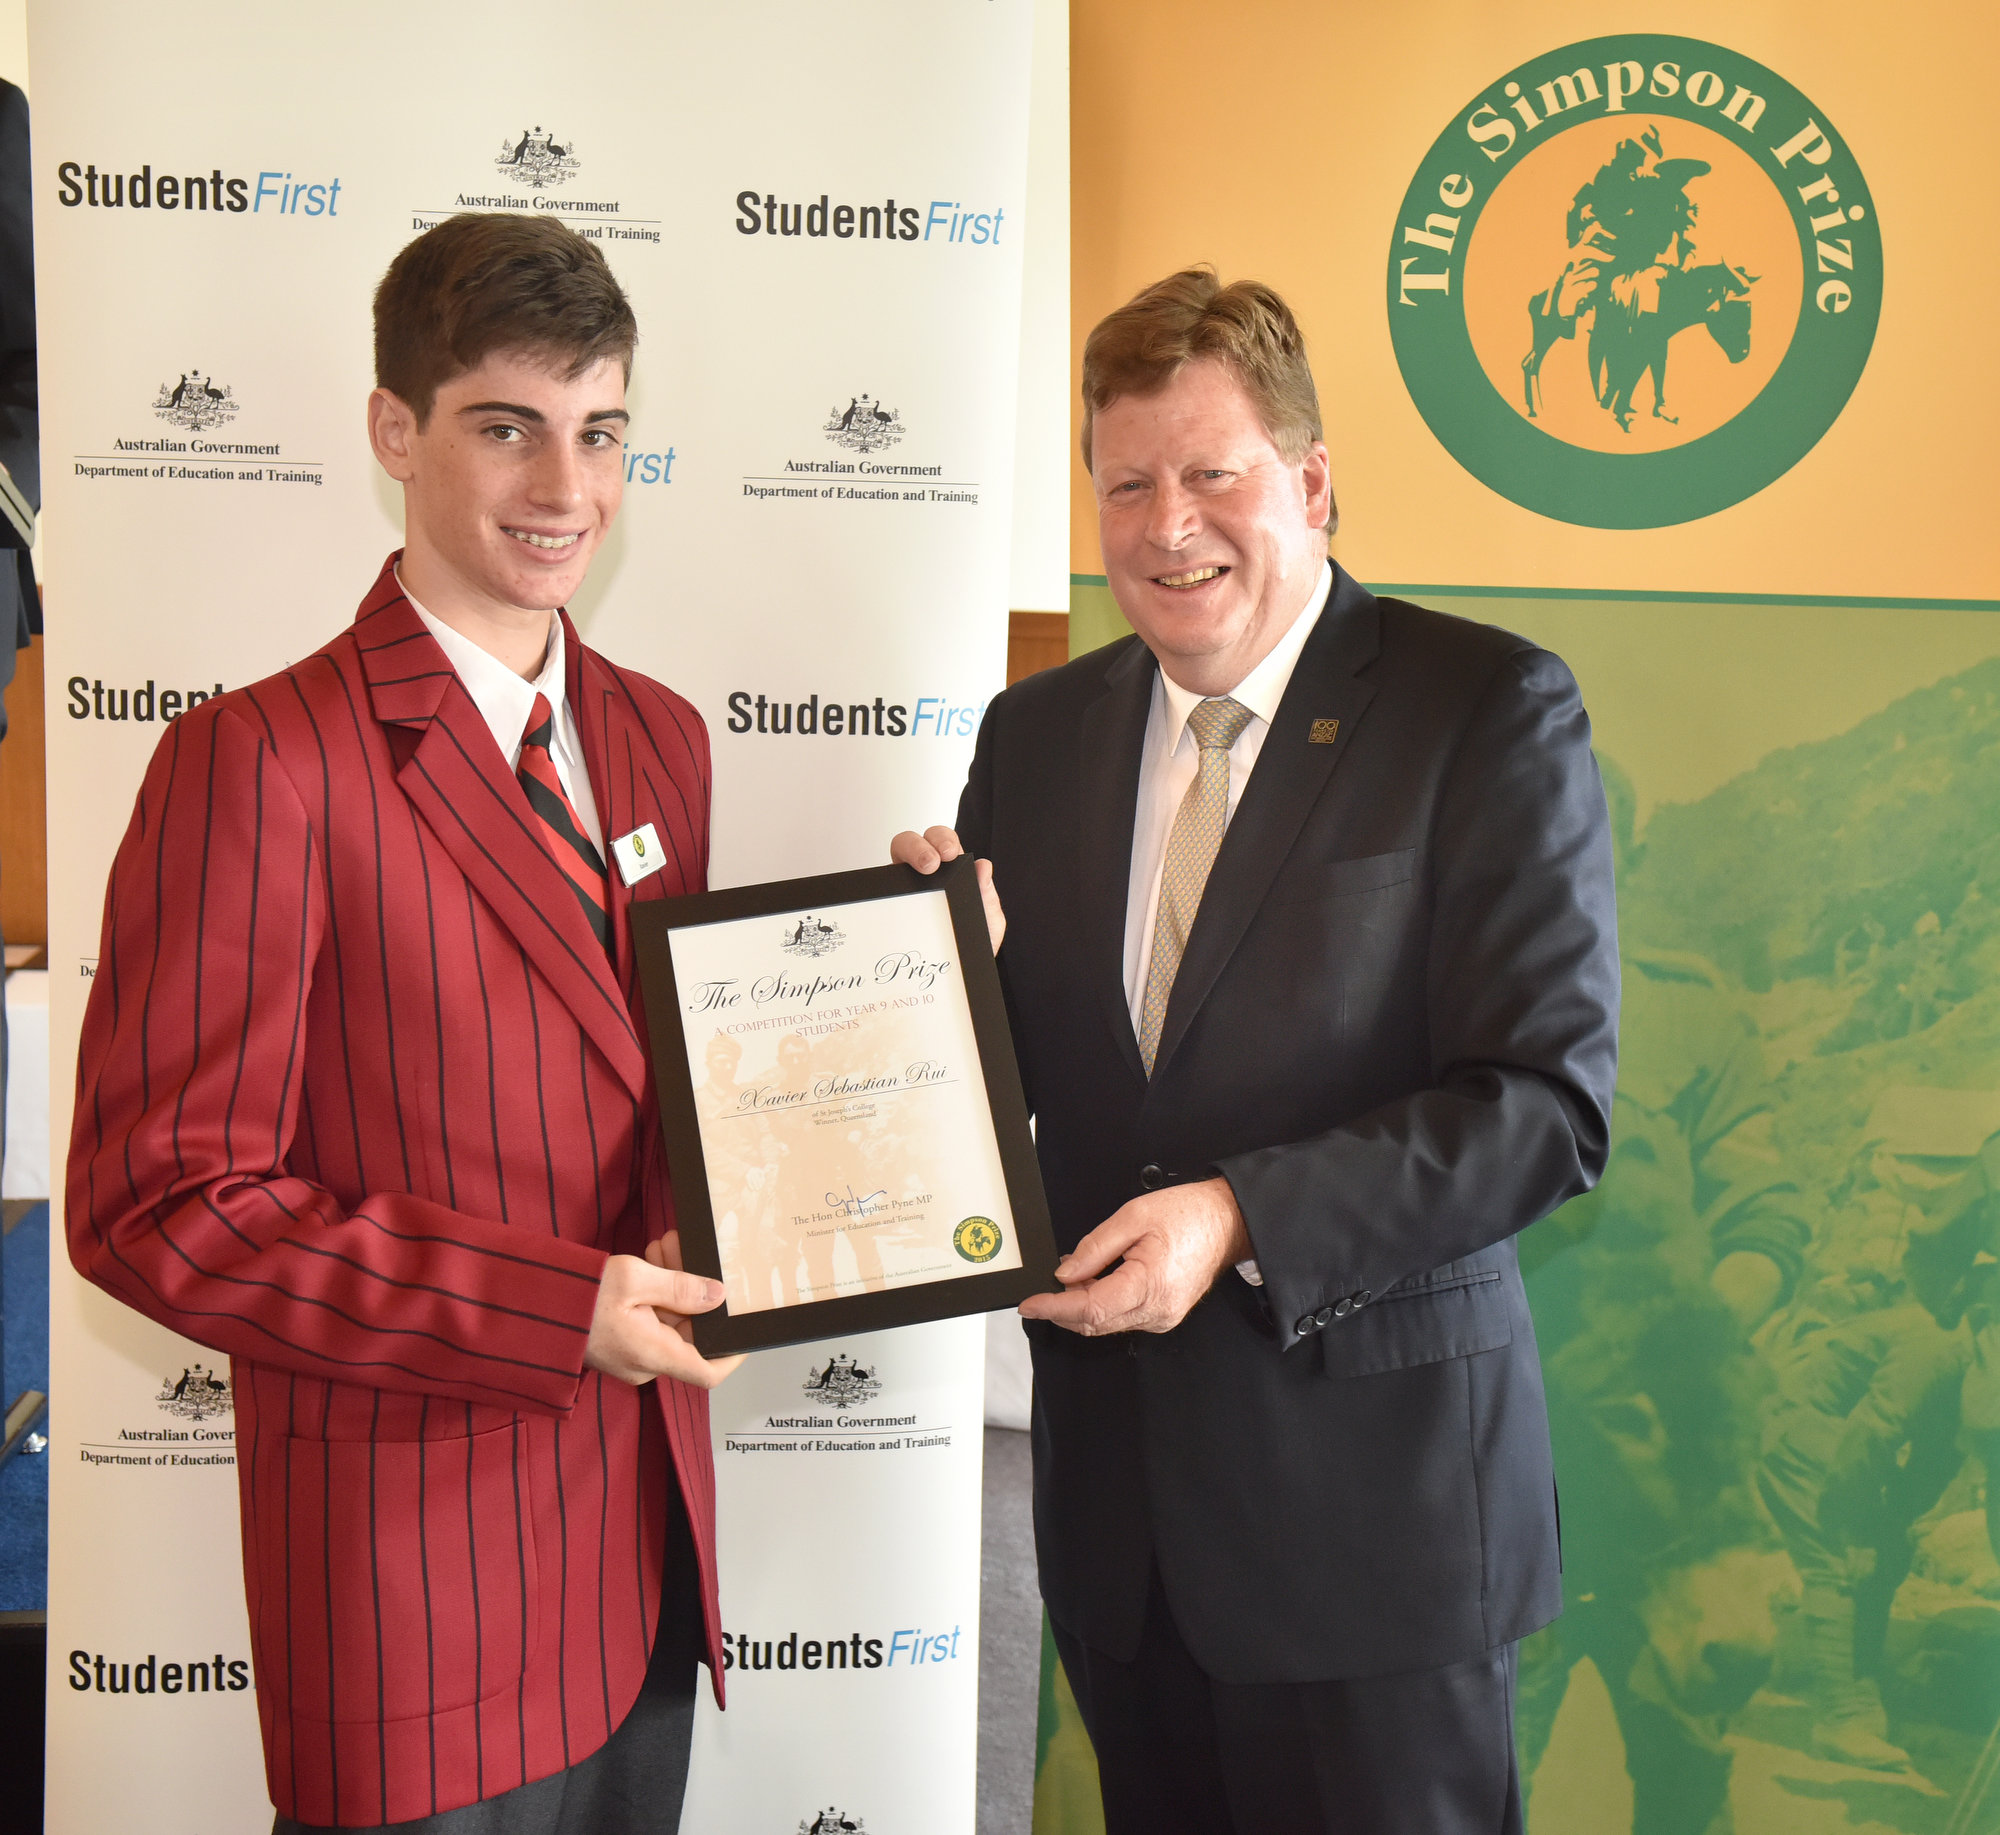 Simpson Prize representatives awards at Parliament House and AWM visit, Canberra, Monday 16th March,  2015. Photo: Mark Graham